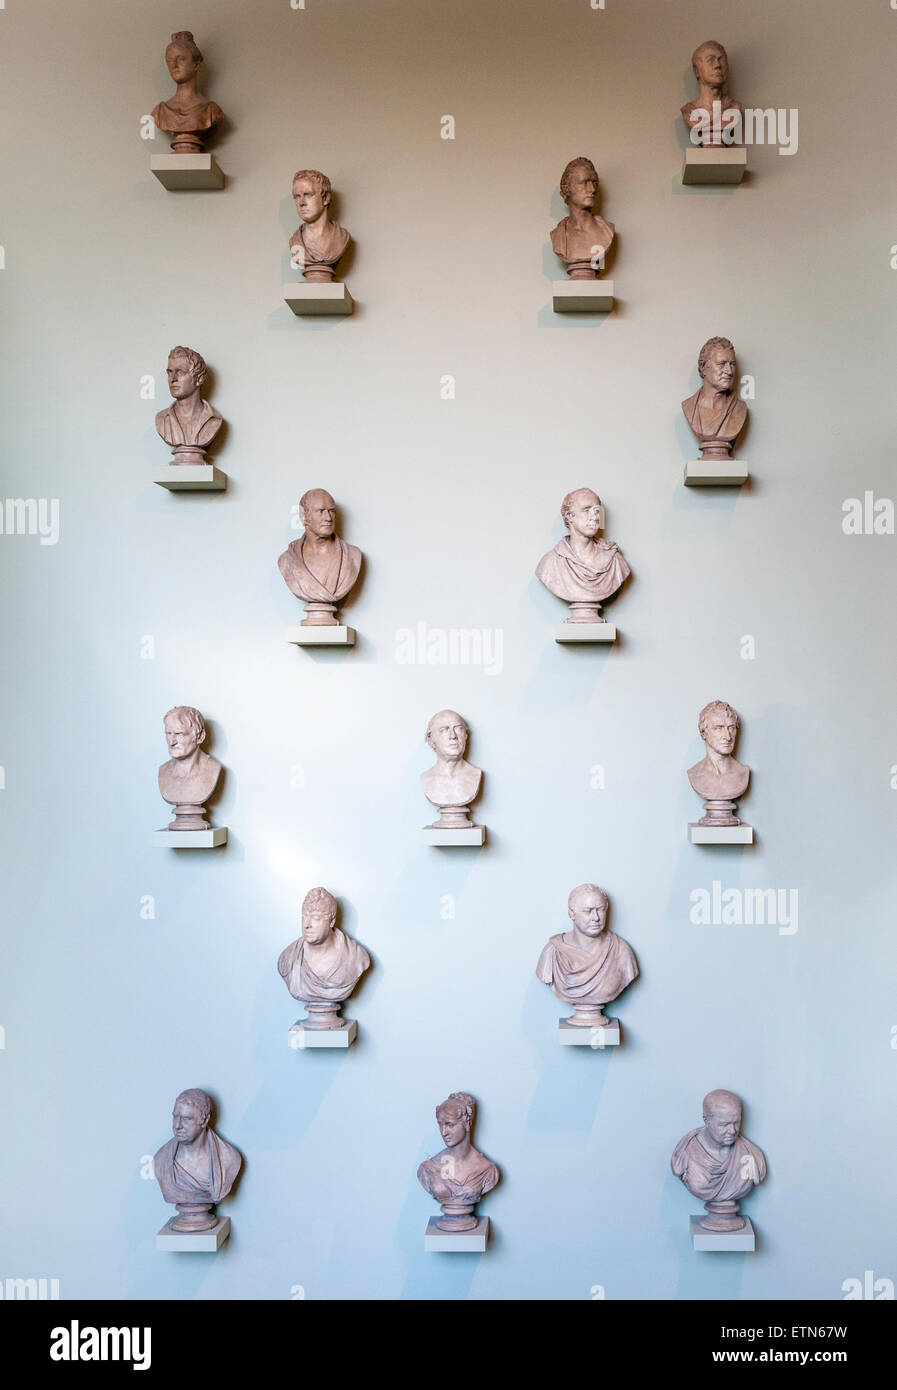 Ashmolean Museum, Oxford, UK. The Chantrey Wall, a collection of plaster busts by Sir Francis Chantrey (1781-1841) - Stock Image